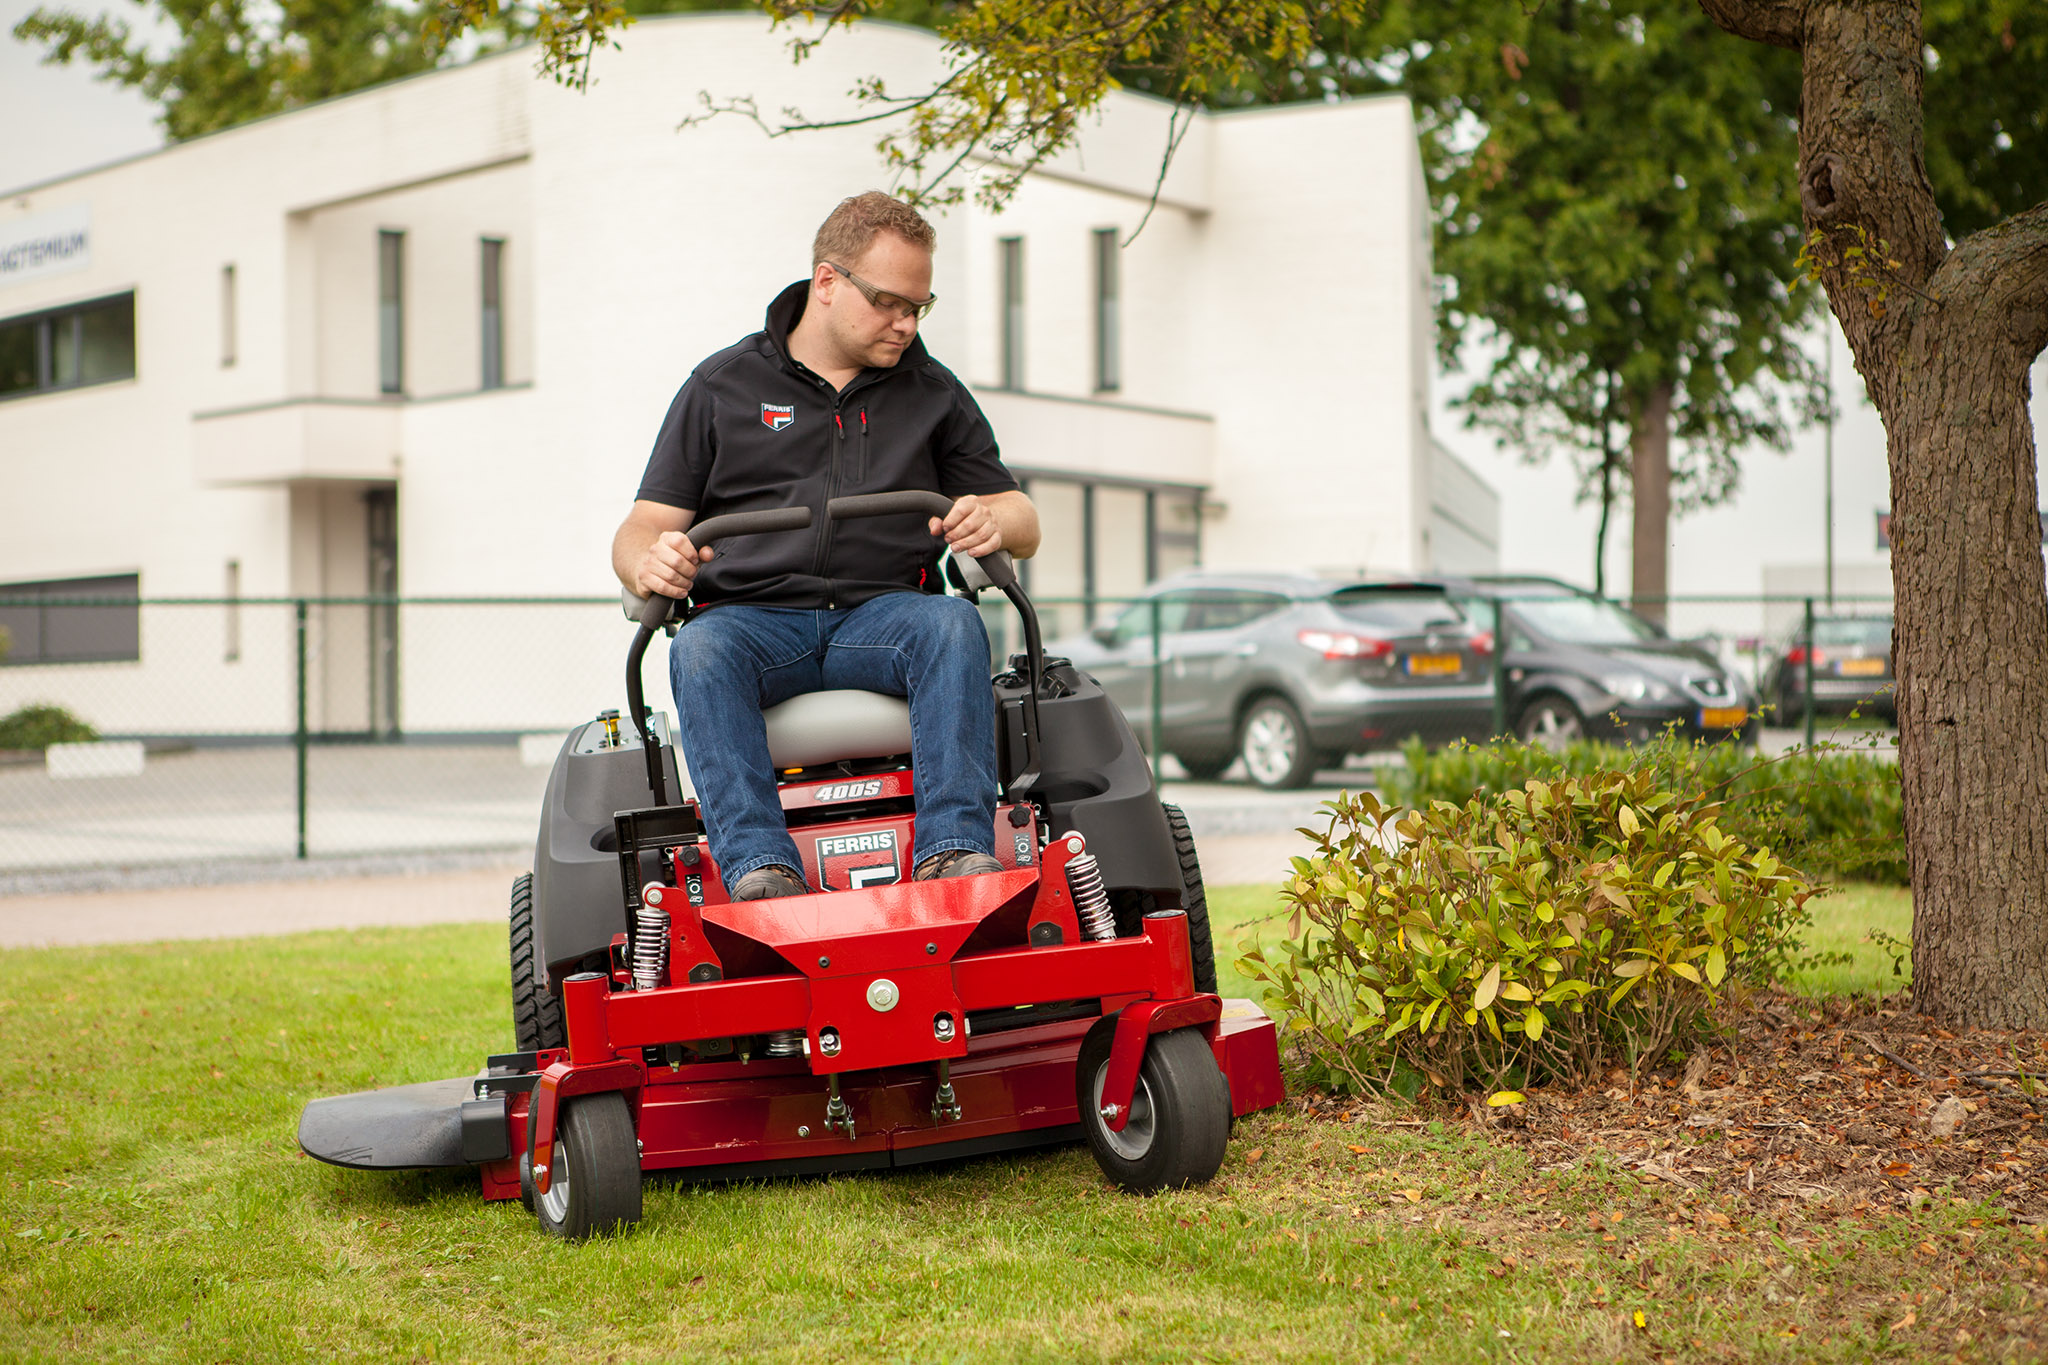 ferris zero turn mower 400s cutting grass around tree